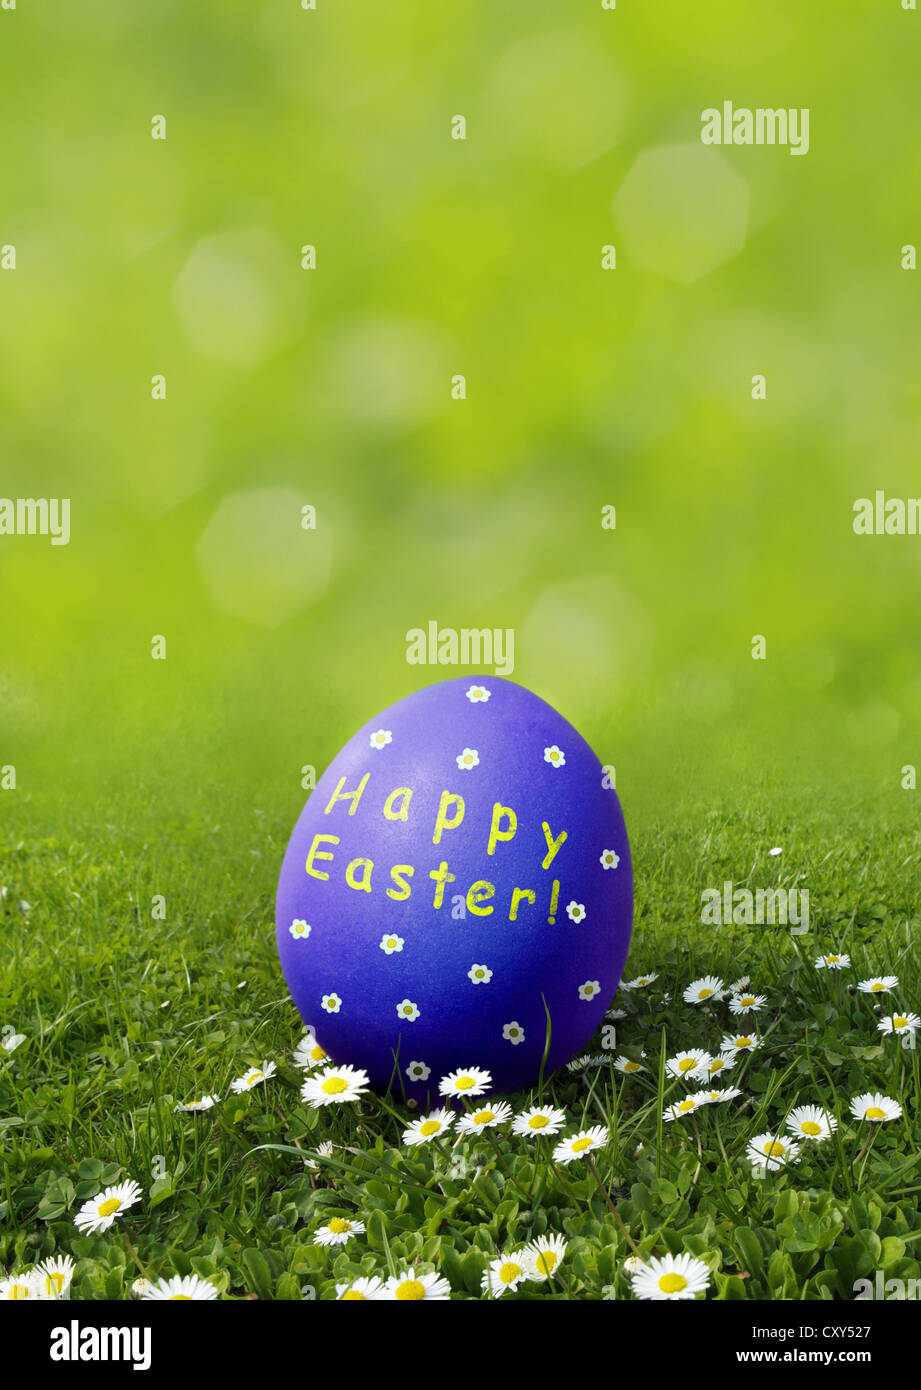 Blue Easter egg with 'Frohe Osten' wishes, German for 'Happy Easter' on a meadow with daisies - Stock Image